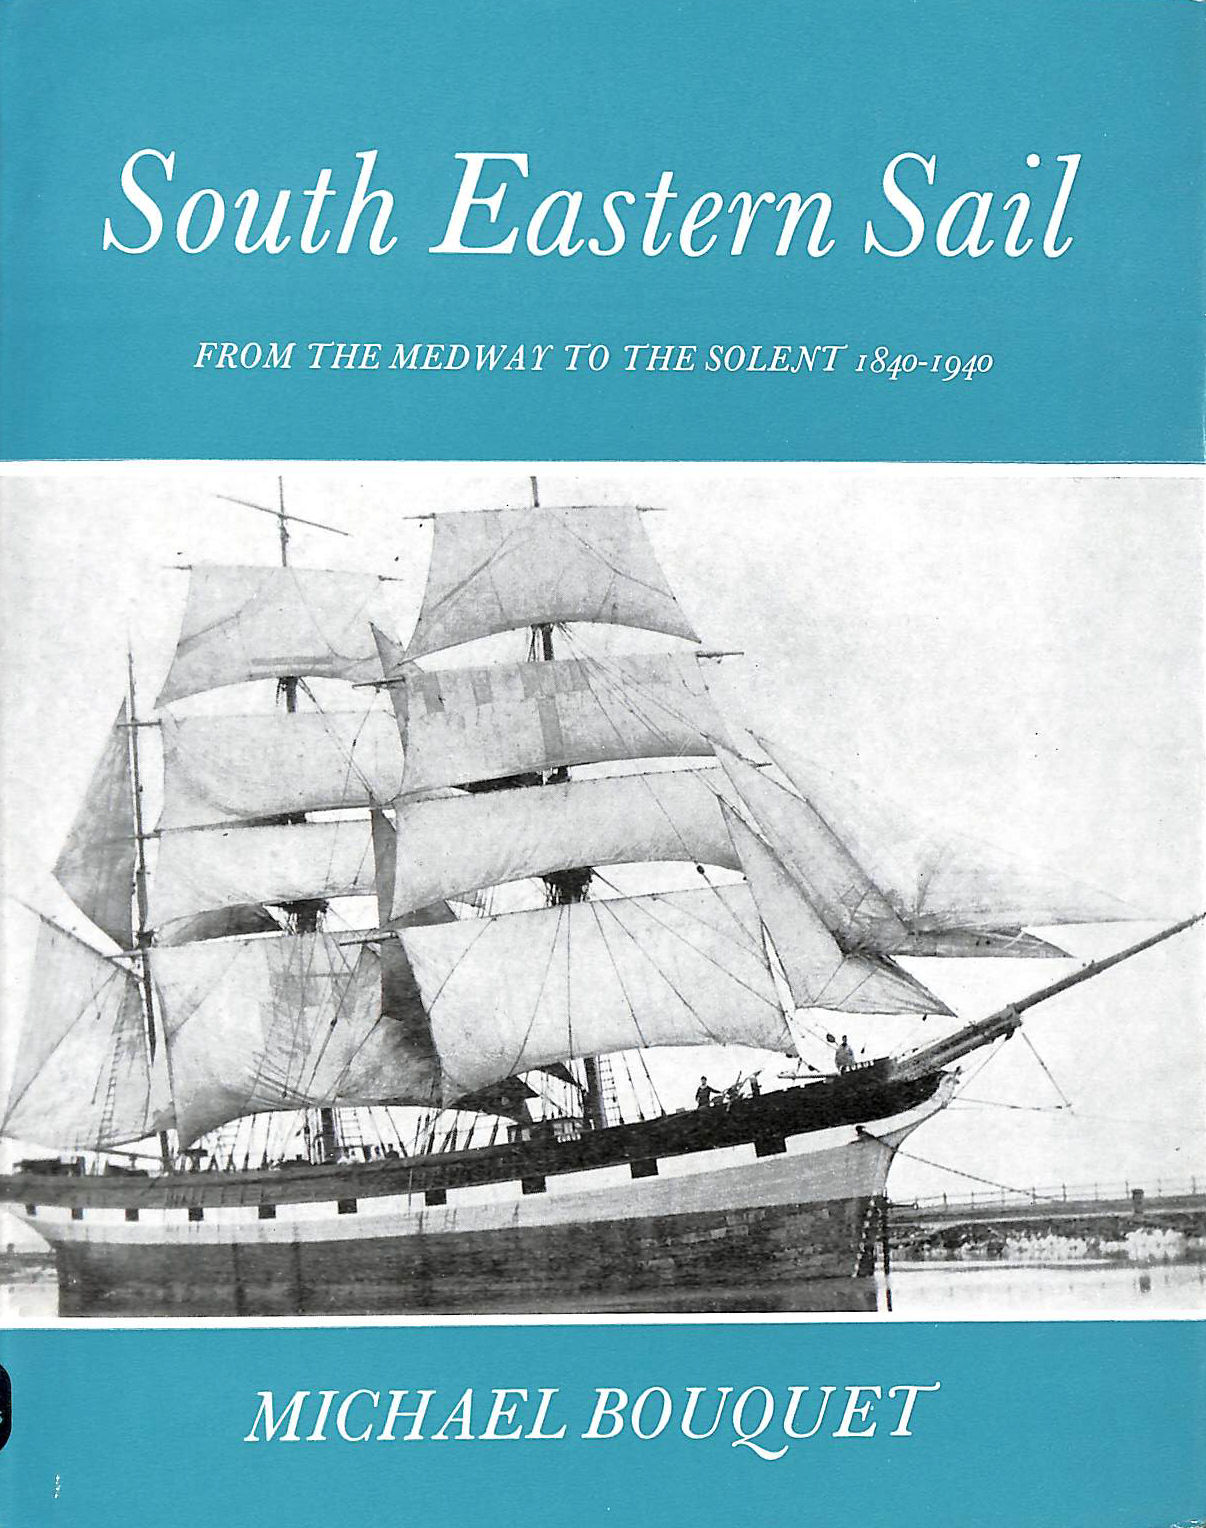 Image for South Eastern Sail: From The Medway To The Solent, 1840-1940